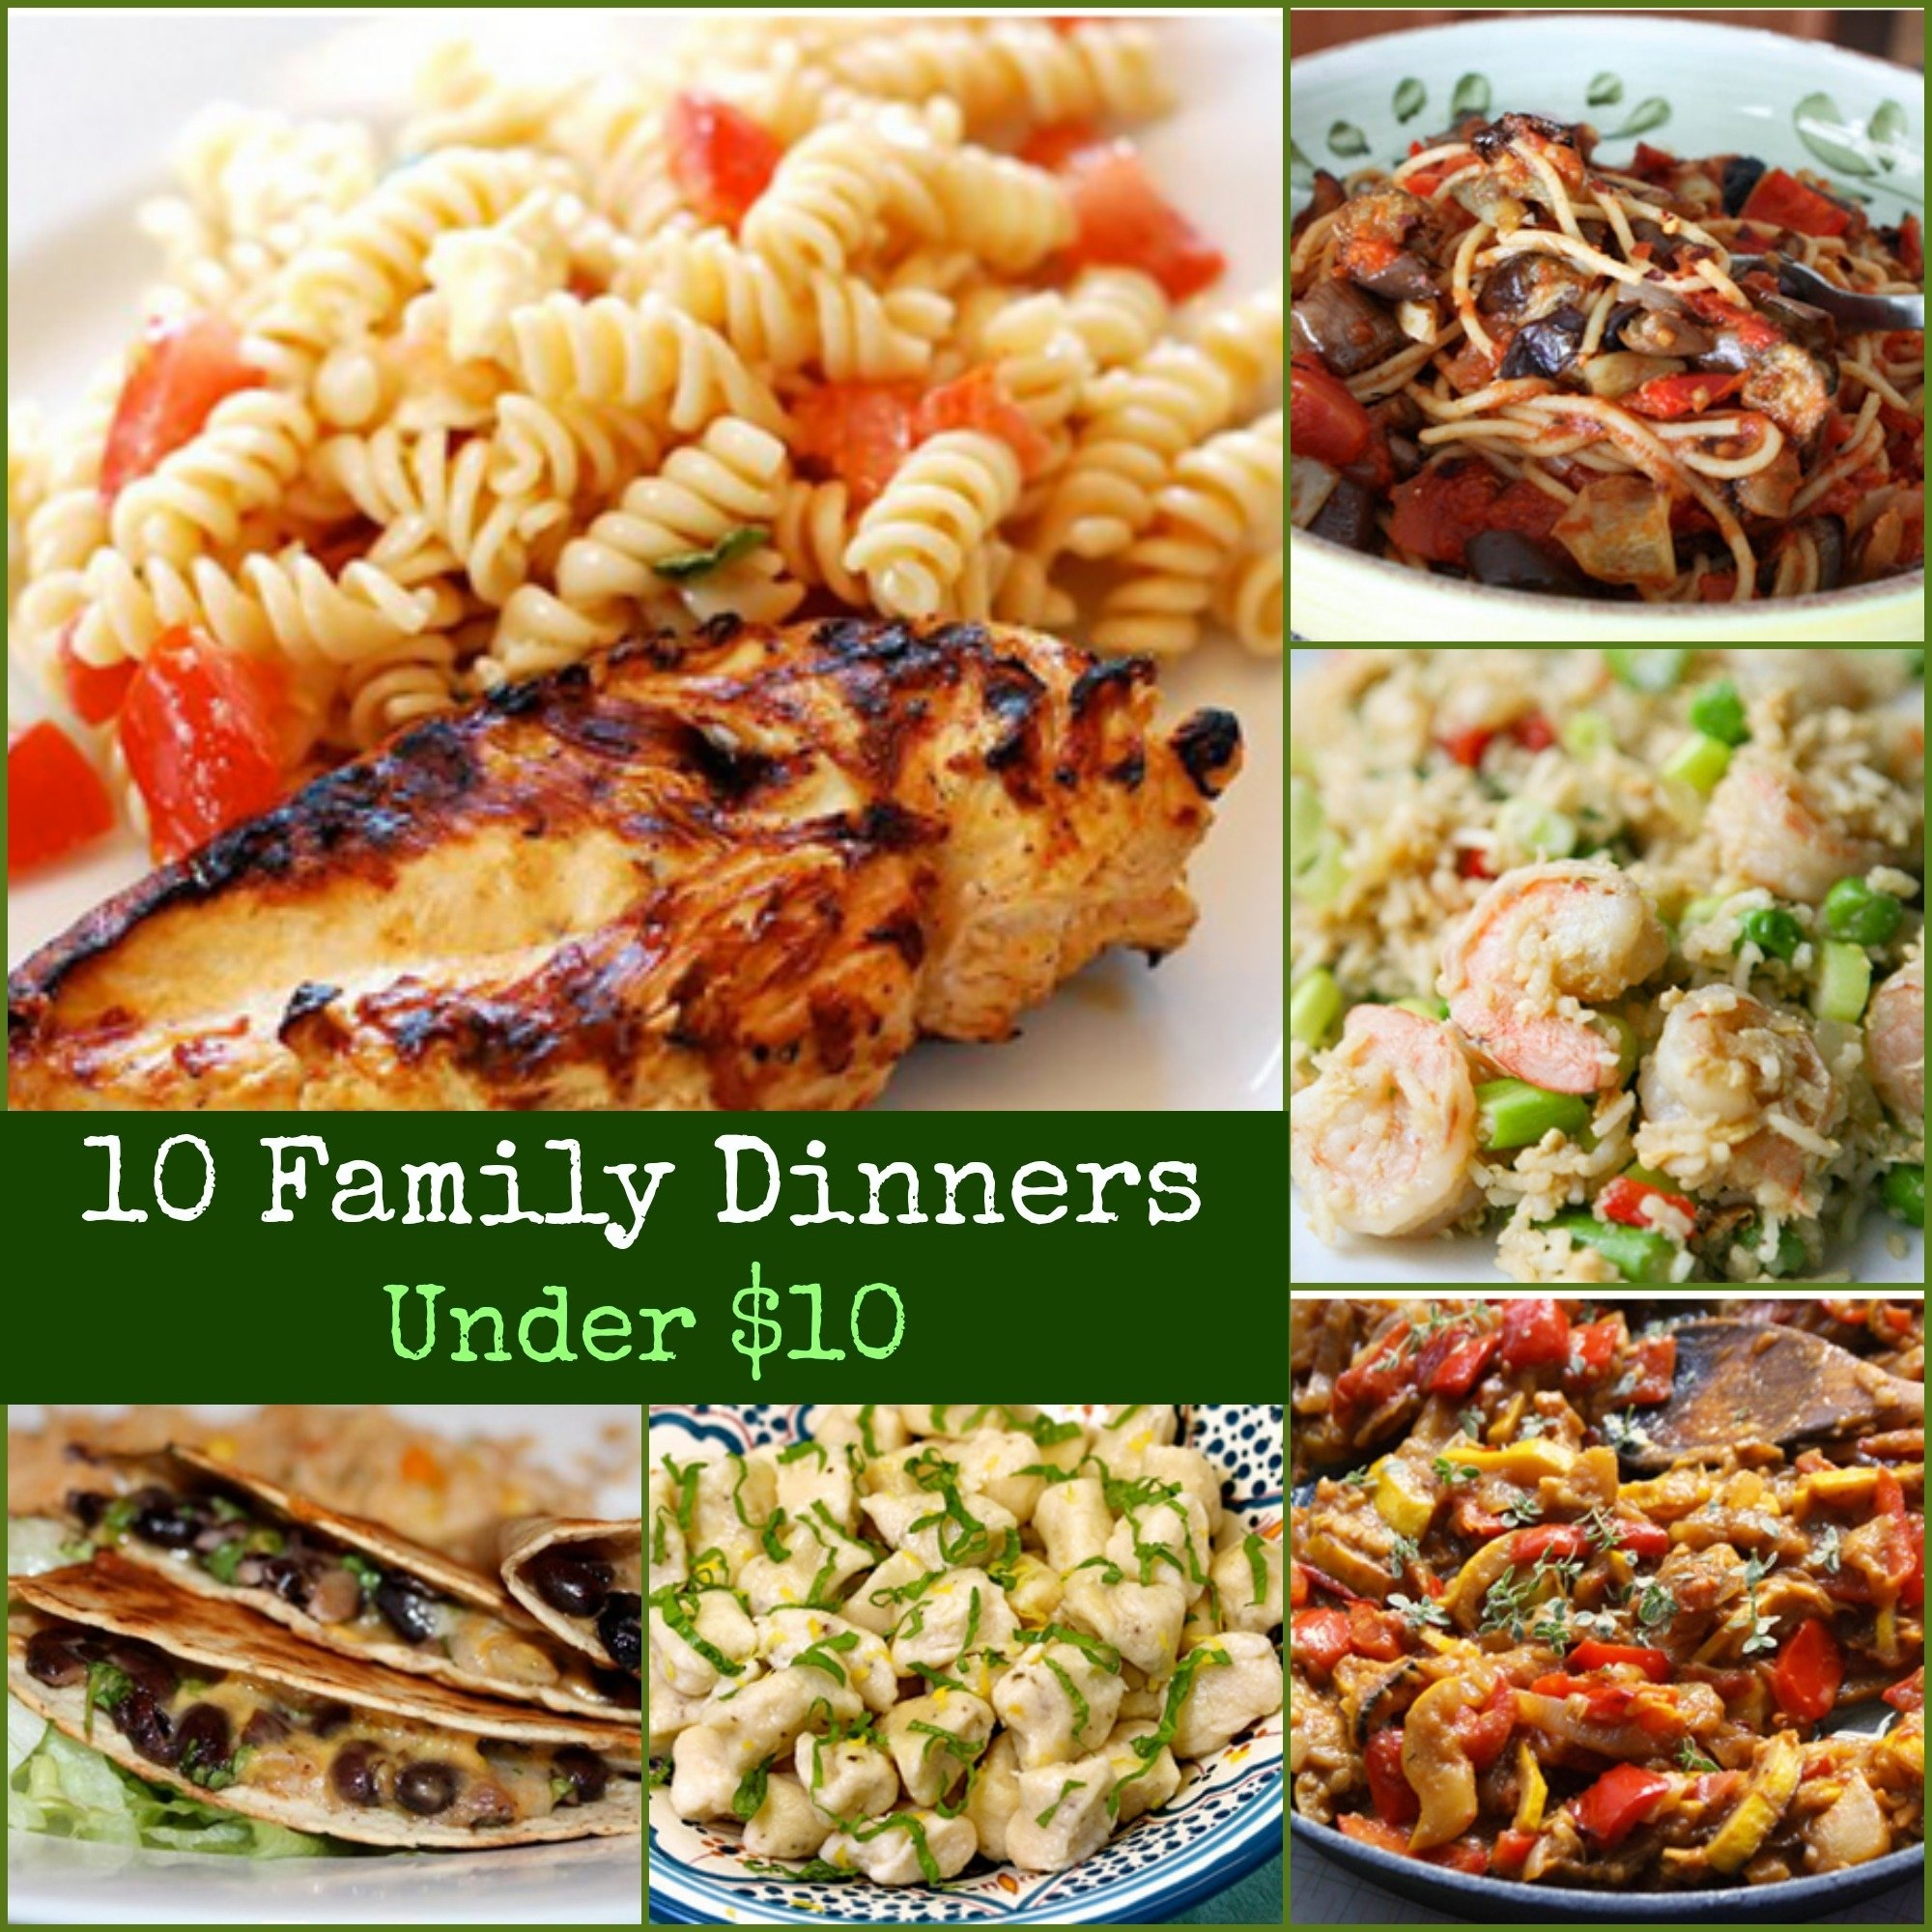 10 Amazing Dinner Ideas For Family Of 6 download quick easy recipes for dinner for the family food photos 3 2021